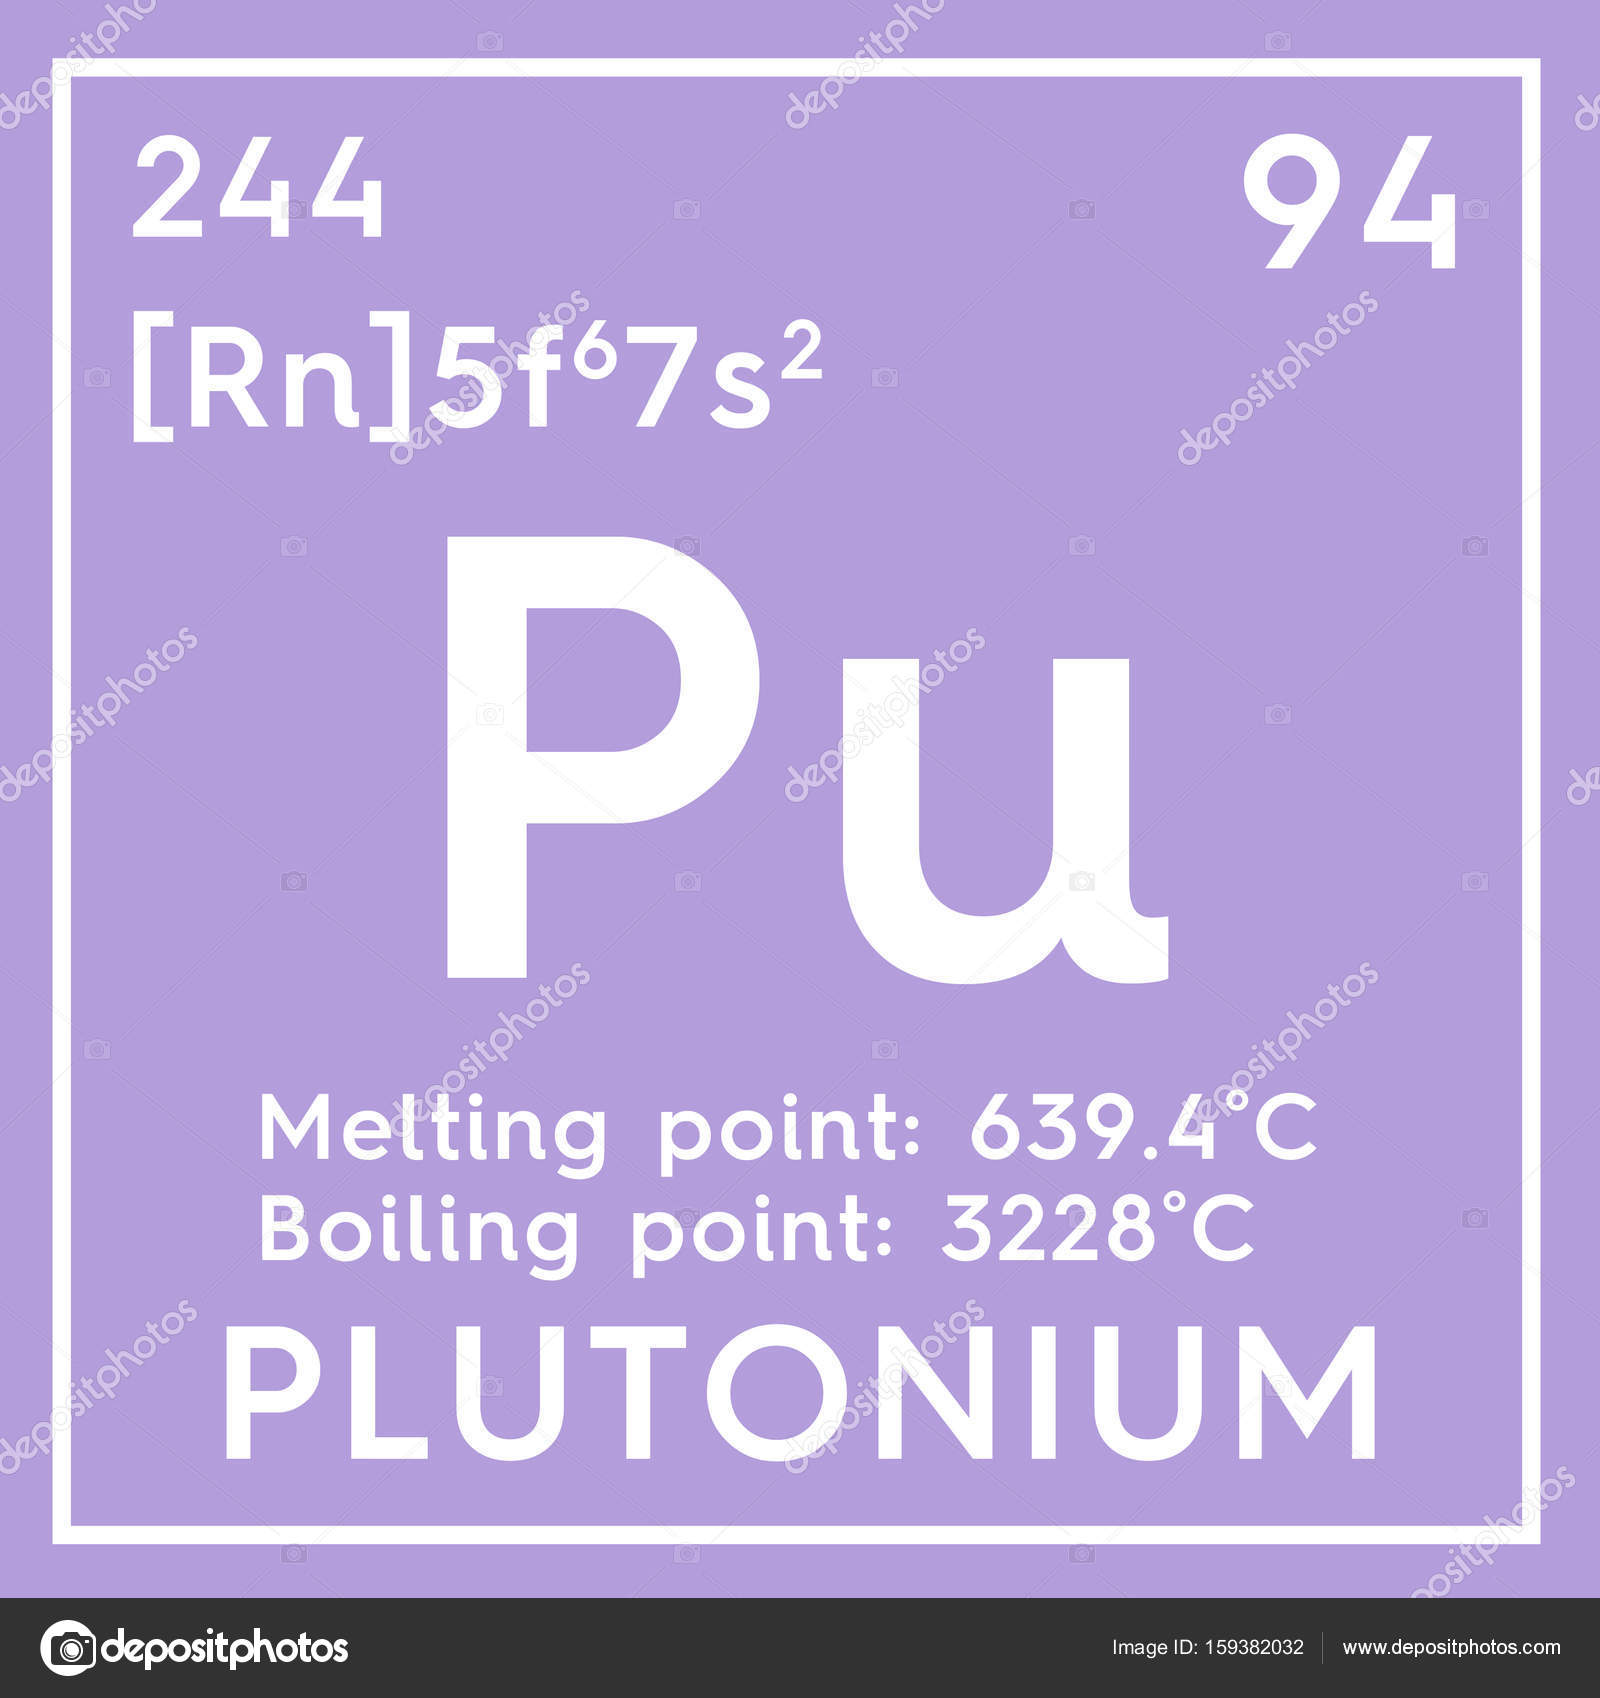 Plutonium actinoids chemical element of mendeleevs periodic plutonium actinoids chemical element of mendeleevs periodic table plutonium in square cube creative concept photo by sanches812 gamestrikefo Image collections